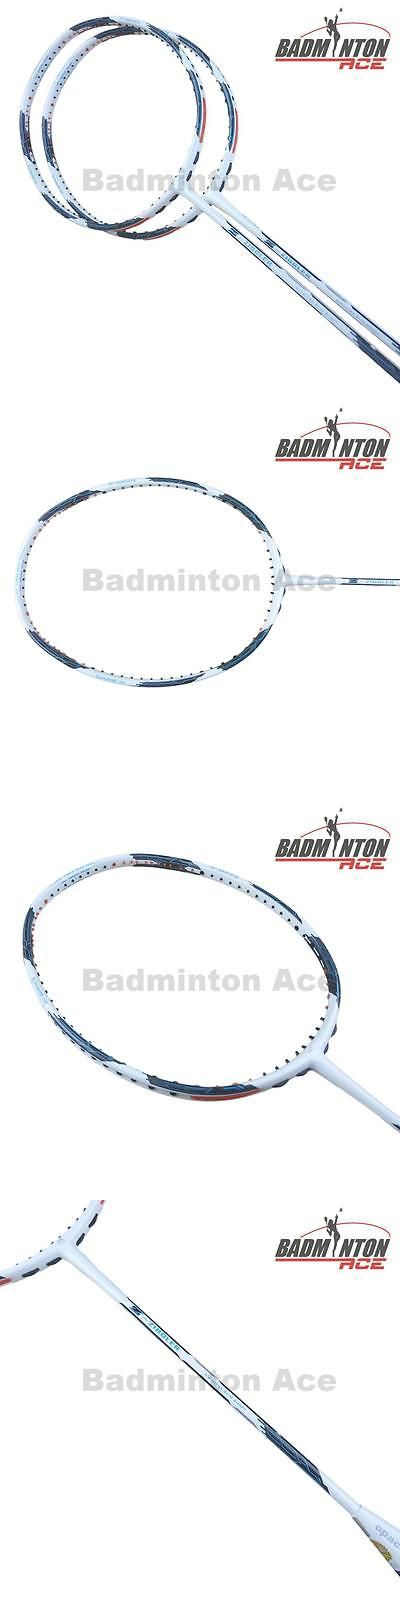 Badminton 106460: 2 X Apacs Z Ziggler White Badminton Rackets Free String And Grip -> BUY IT NOW ONLY: $71.18 on eBay!